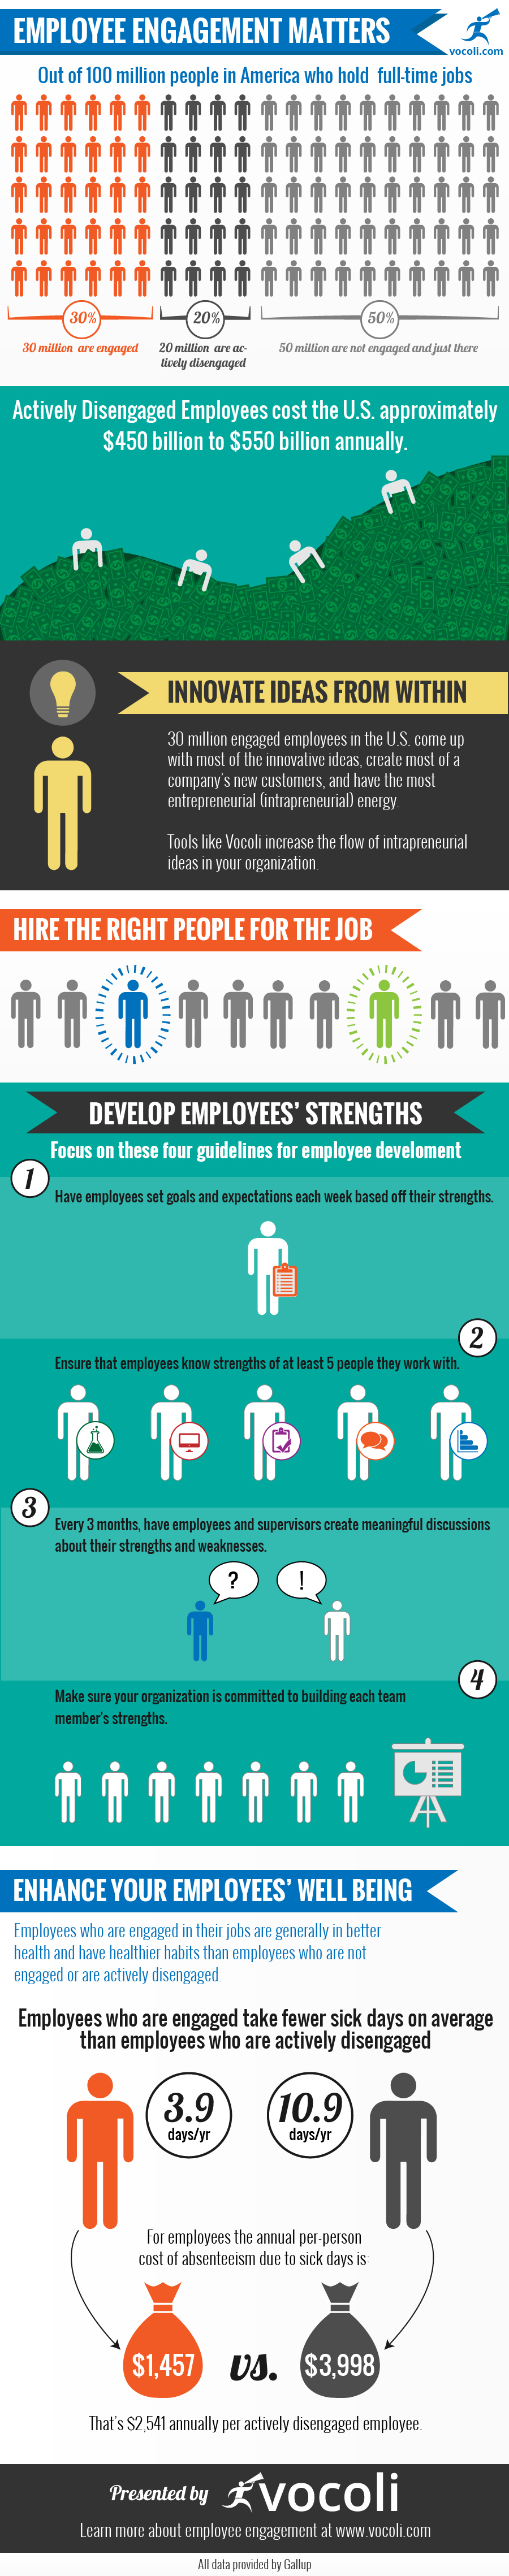 employee engagement matters click here to jpeg or pdf